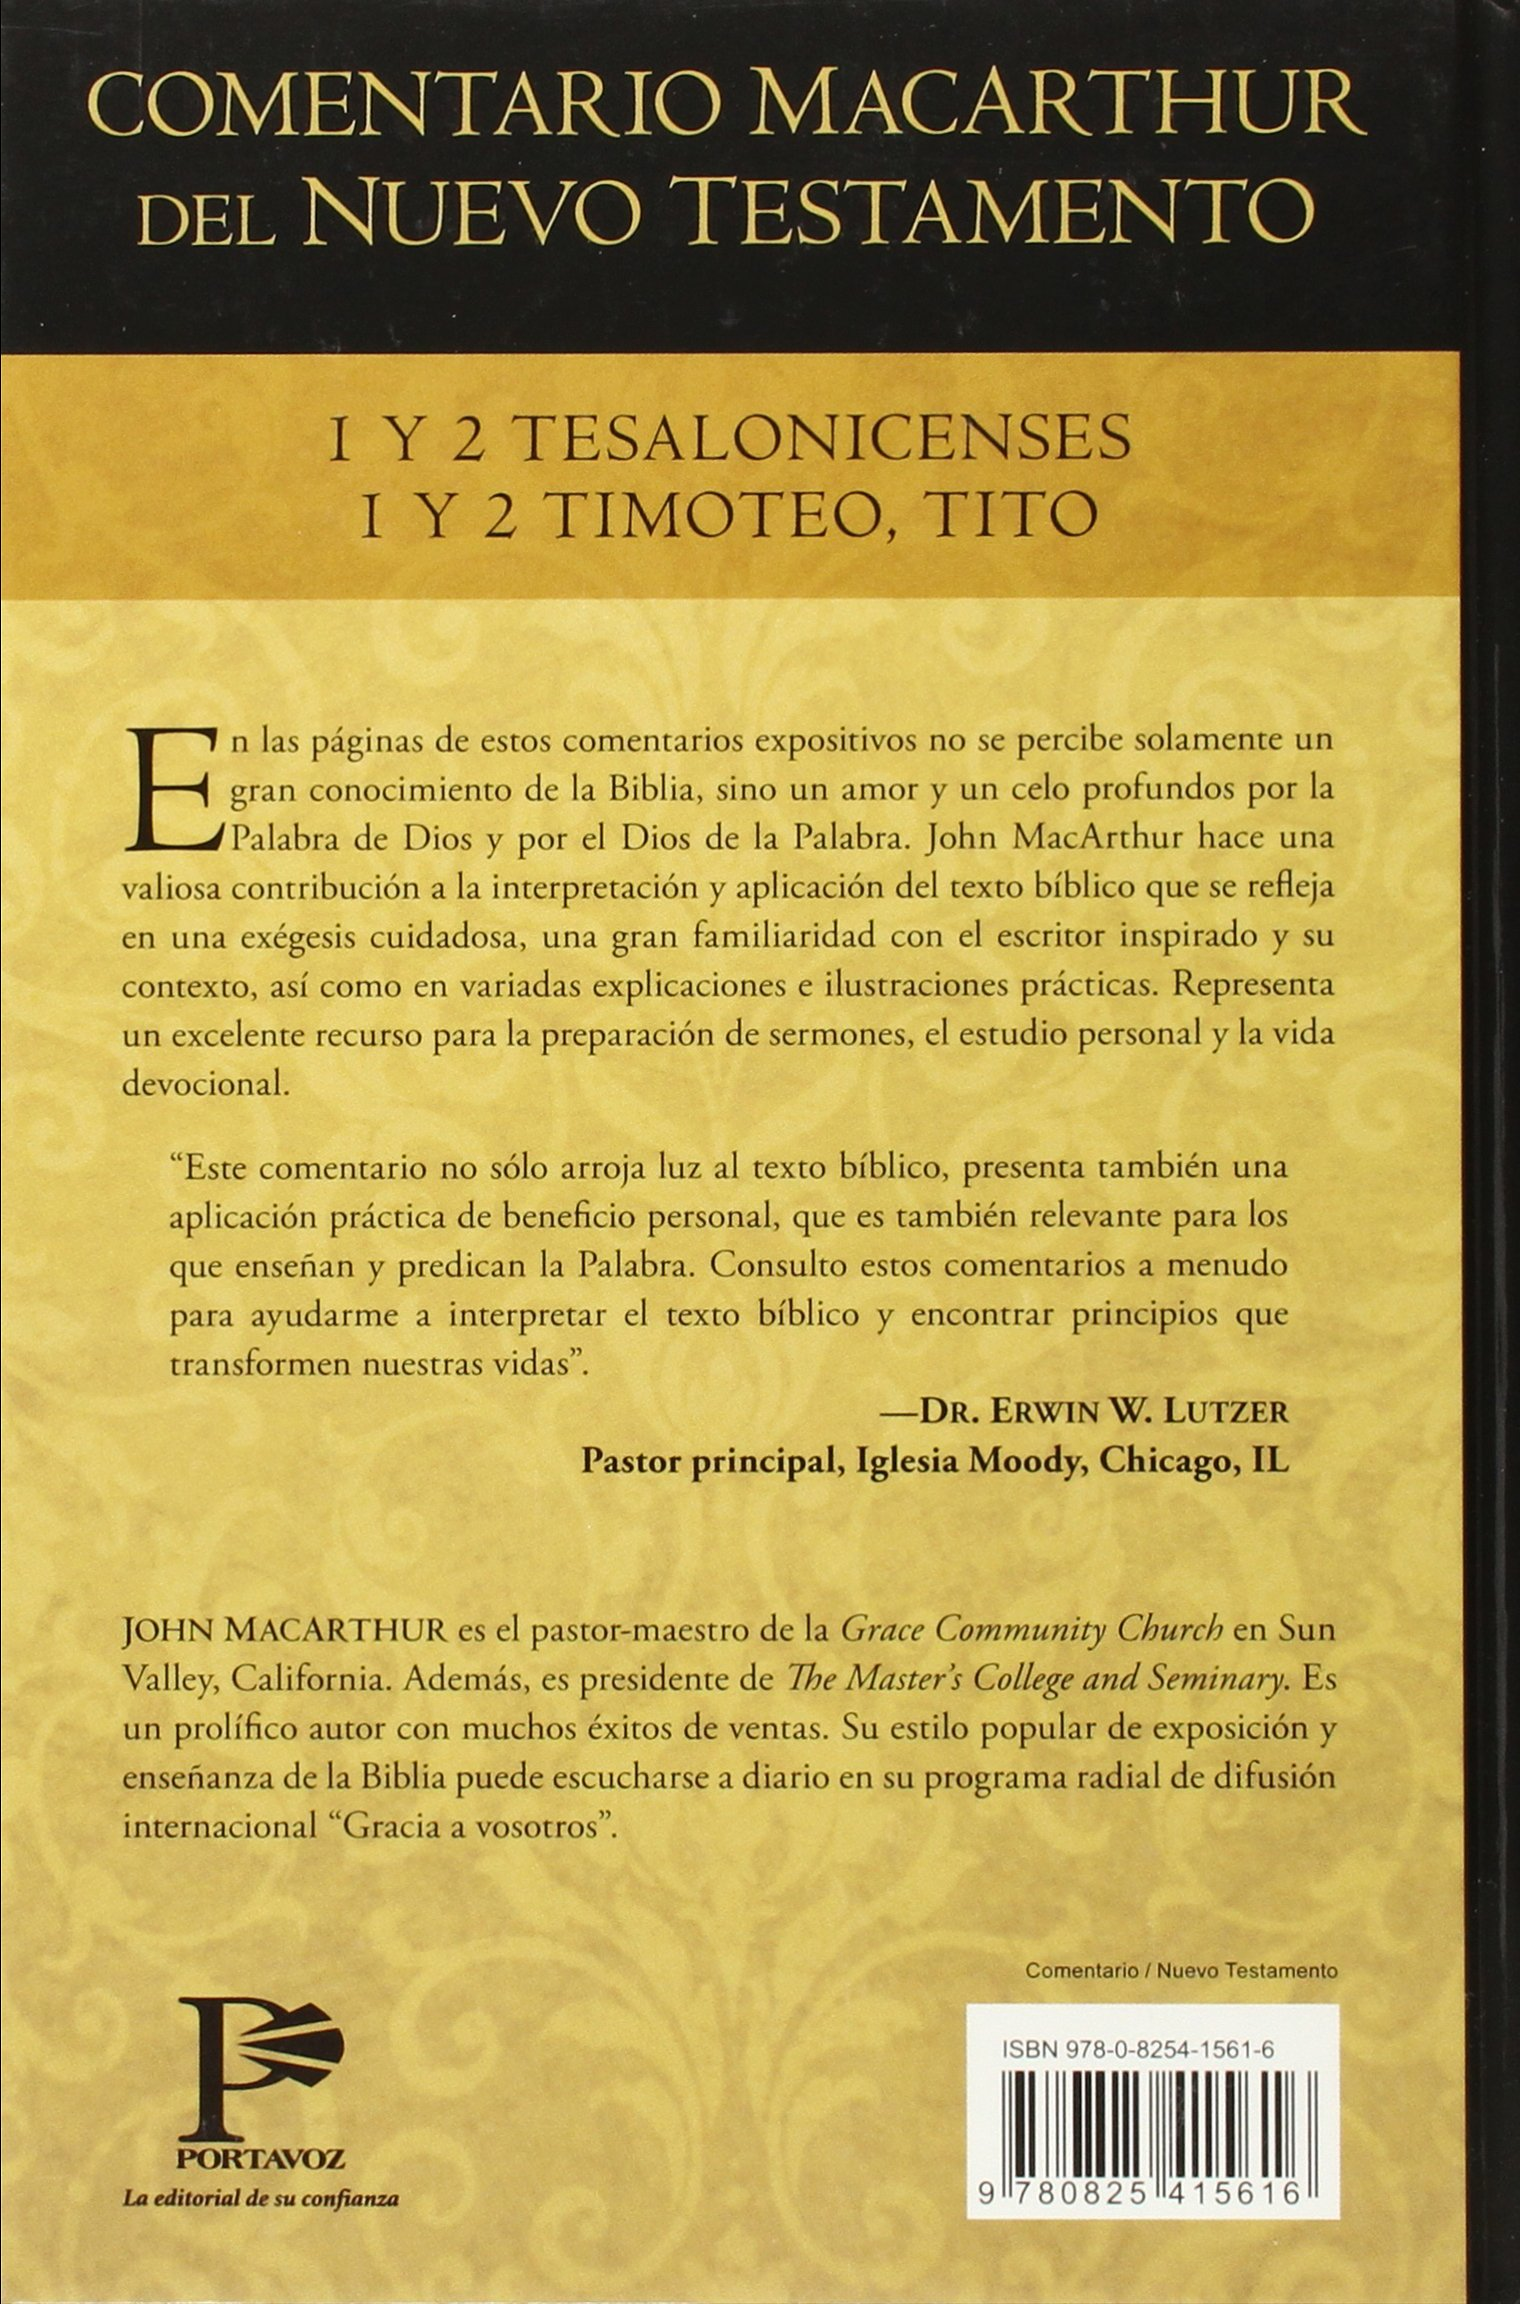 1y2 Tesalonicenses 1y2 Timoteo, Tito (Comentario MacArthur del N.T.)  (Spanish and Spanish Edition): John MacArthur: 9780825415616: Amazon.com:  Books